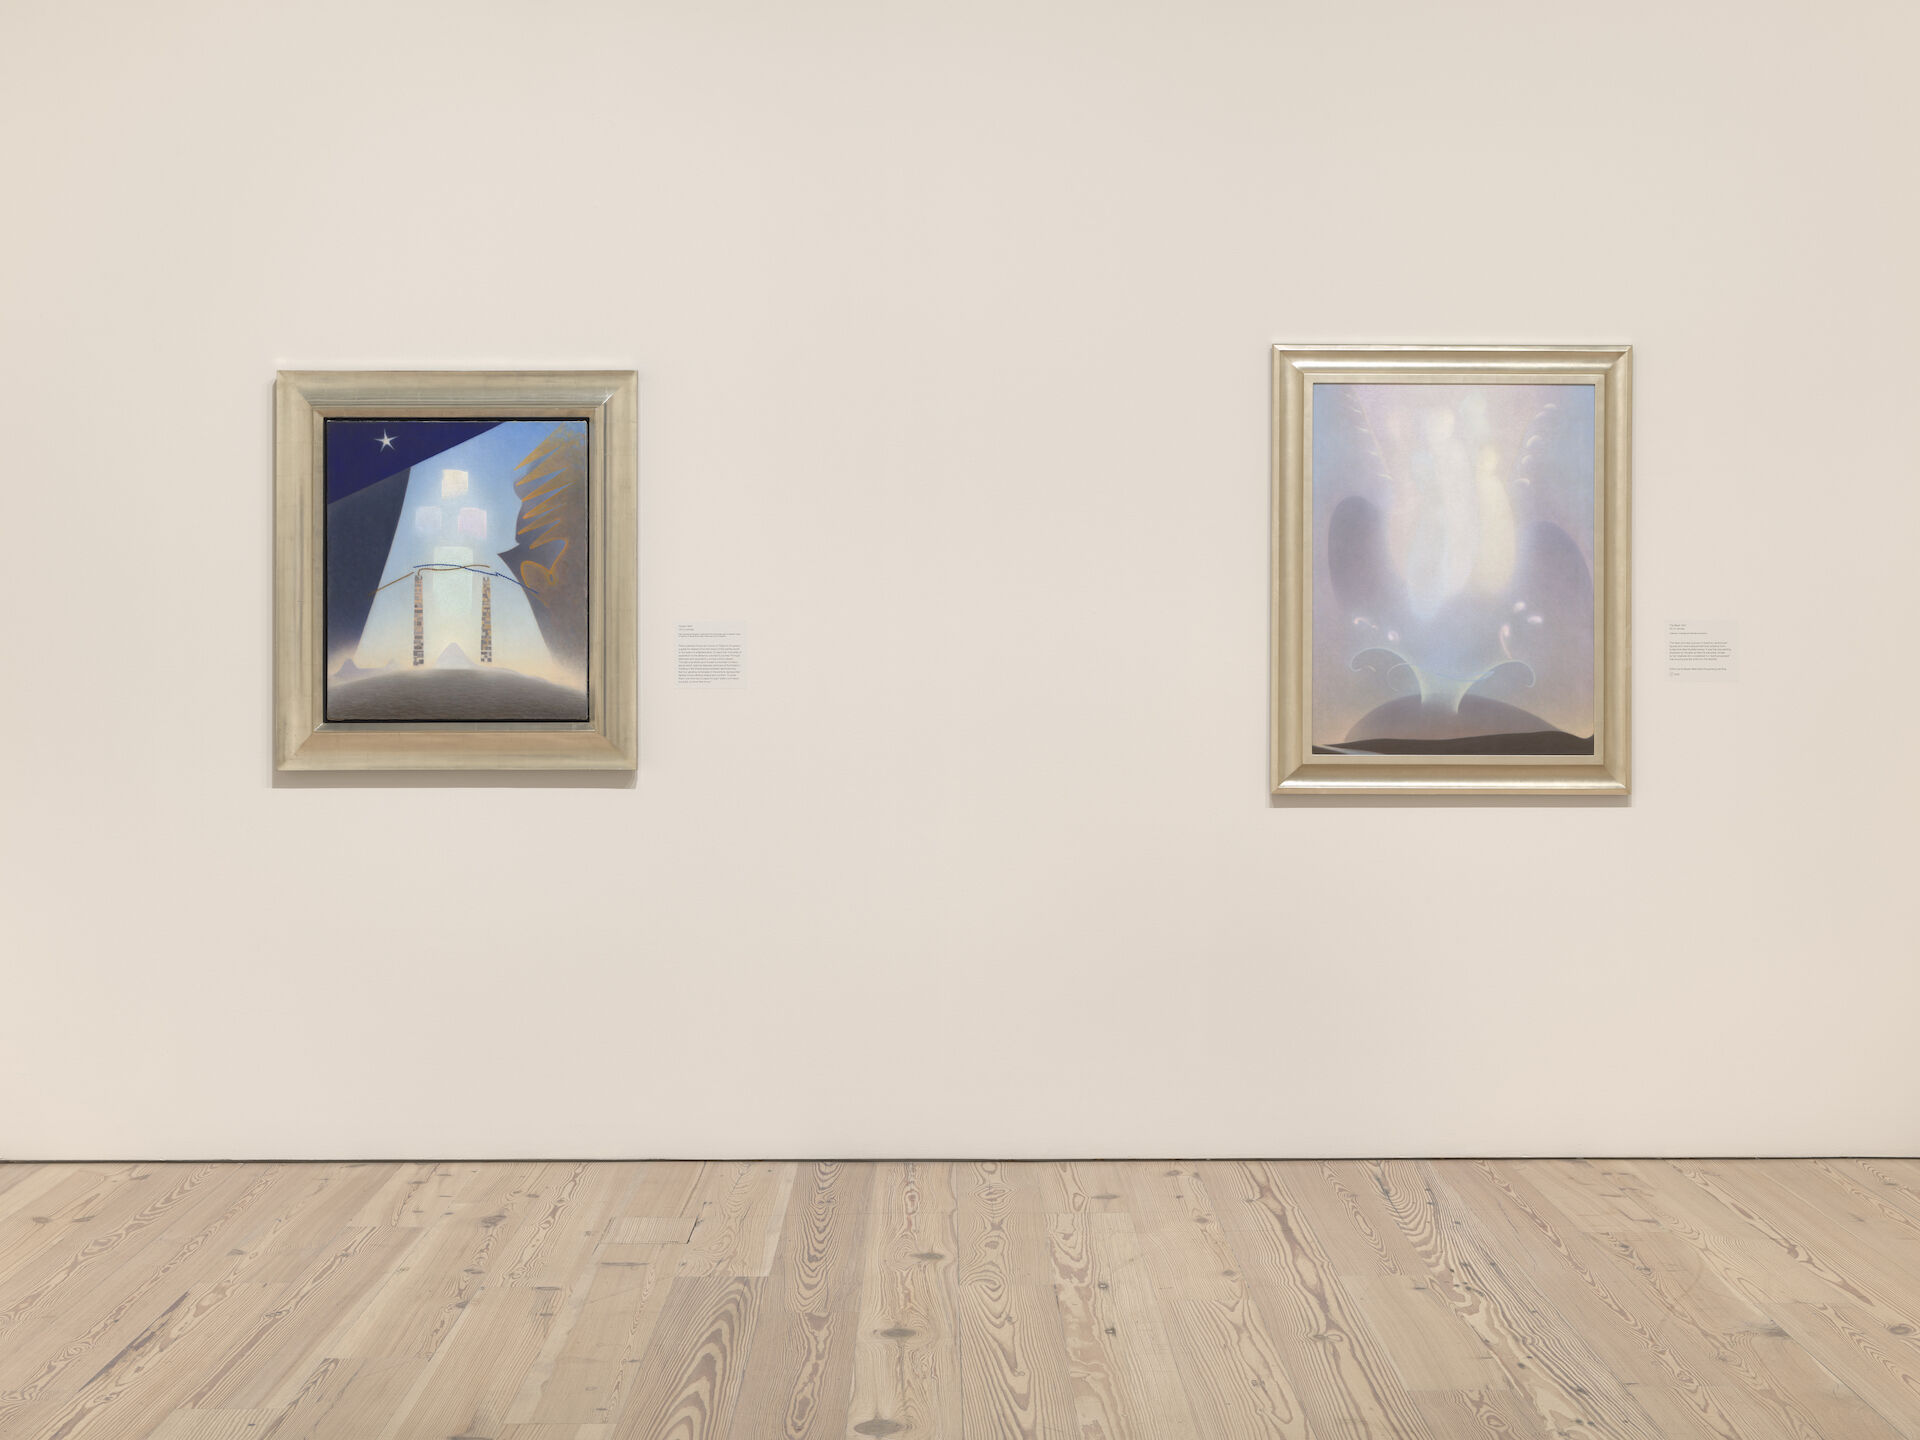 Two paintings by Agnes Pelton appear directly ahead on a white wall of the Whitney. From left to right: Future, 1941; The Blest, 1941.